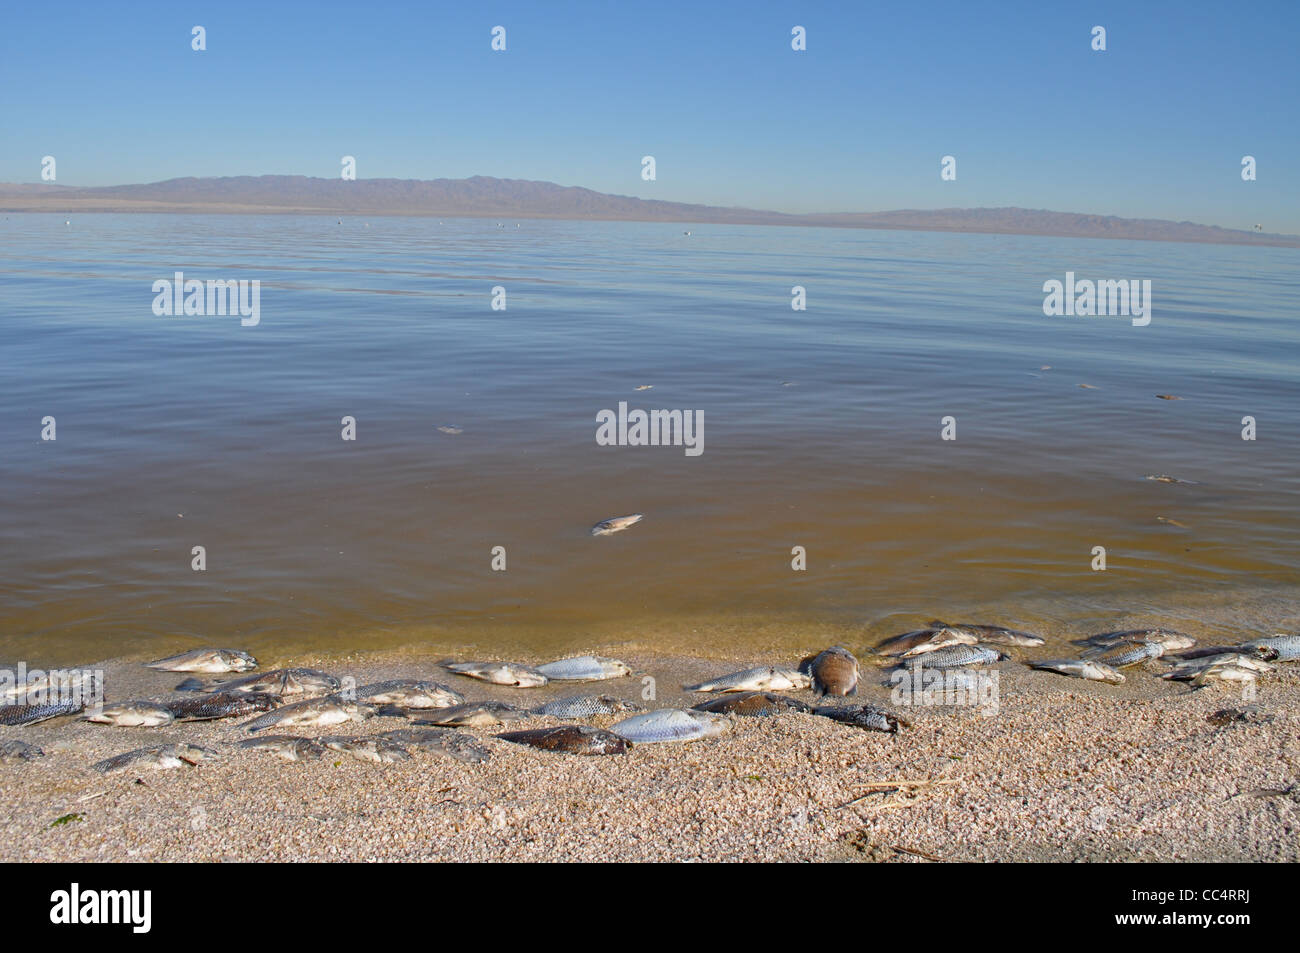 Salton Sea, now almost a ghost town, with dead Tilapia fish bobbing along the edge of the saline lake, California - Stock Image